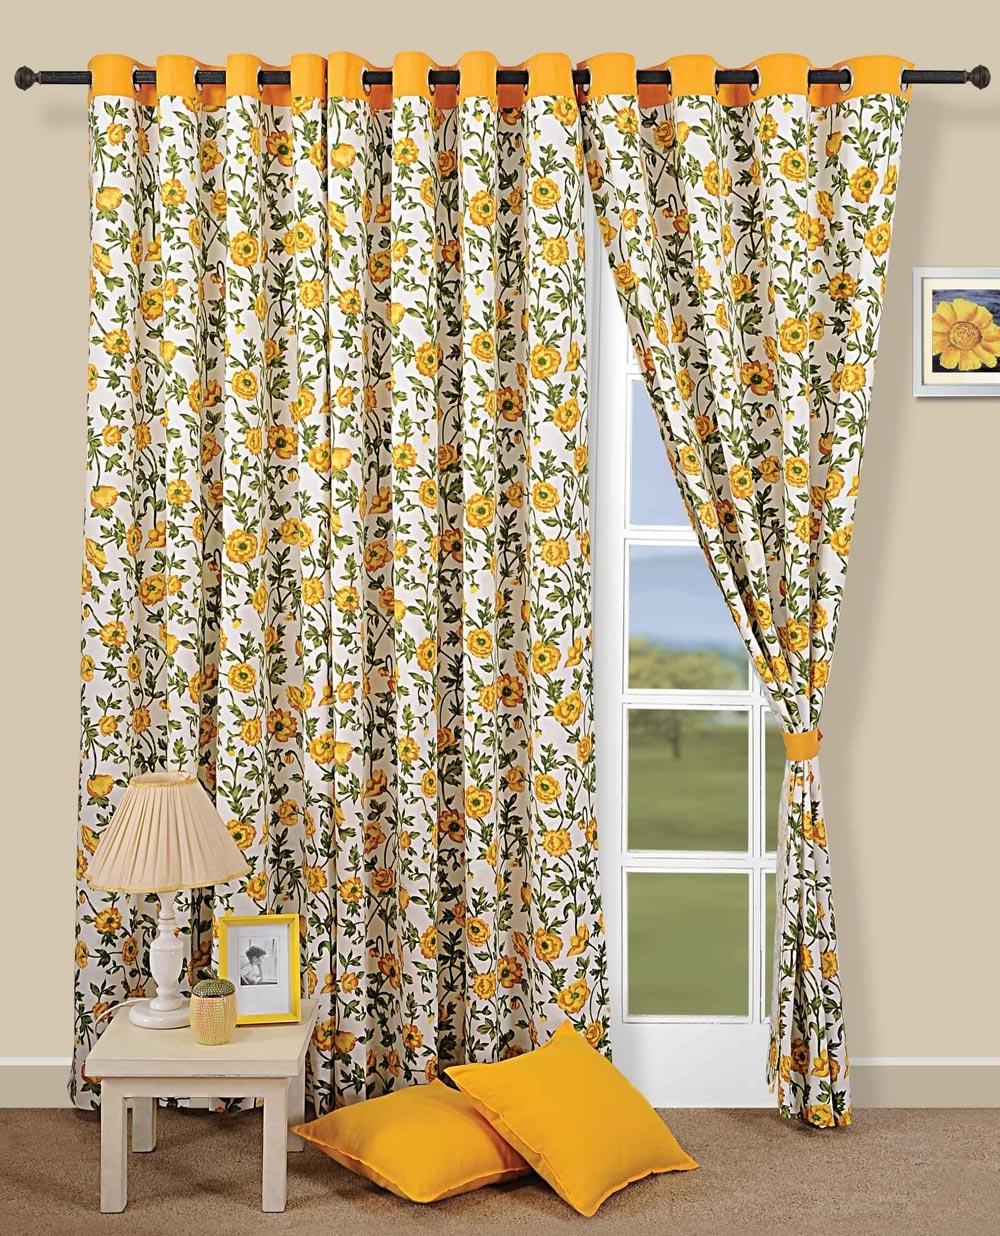 Featured Image of Harmonious Floral Curtain Pattern